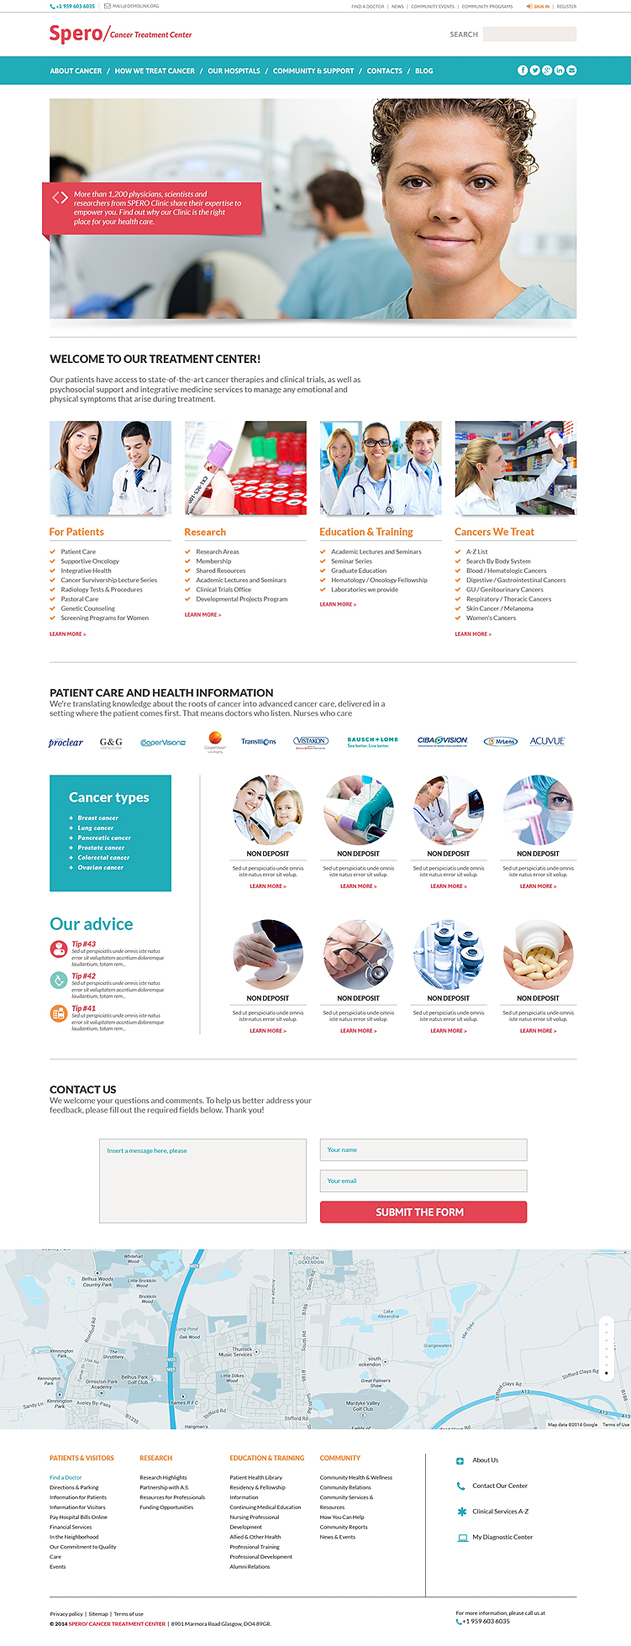 Rehabilitation WordPress Theme for Doctor's Office or Treatment Center